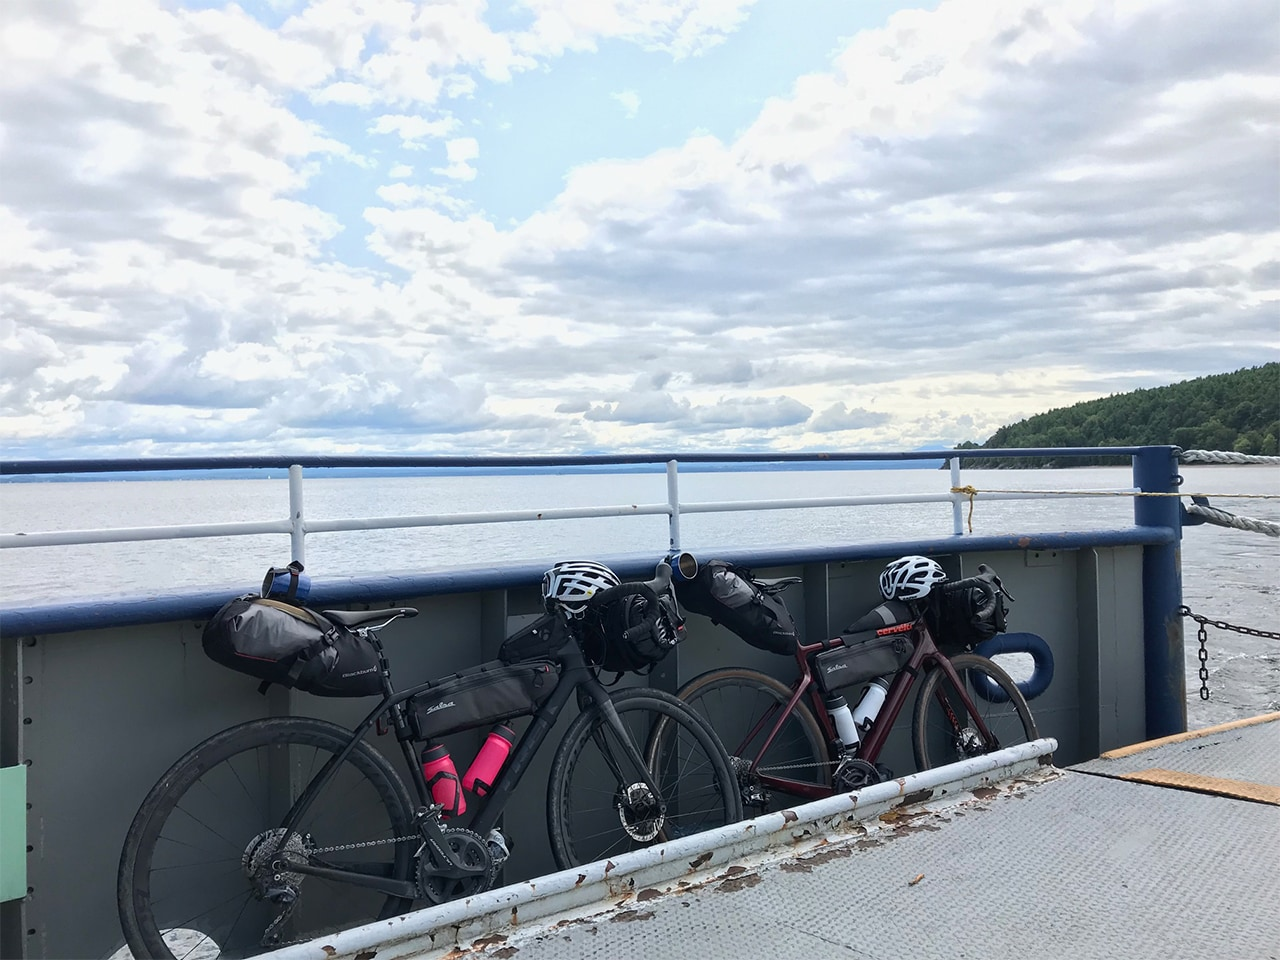 Bikepacking bikes on a boat